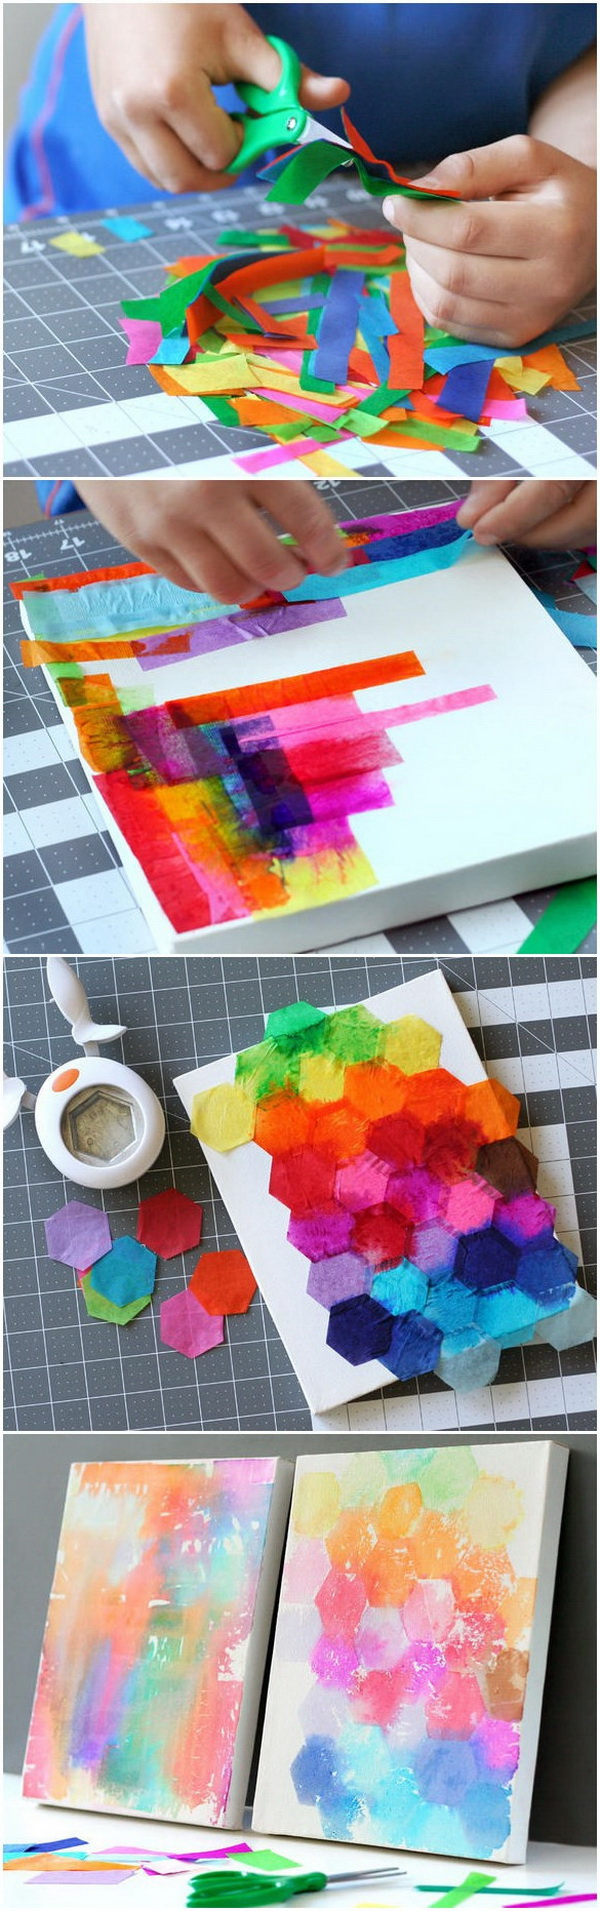 Easy Kids Craft Ideas: Tissue Painted Canvas.